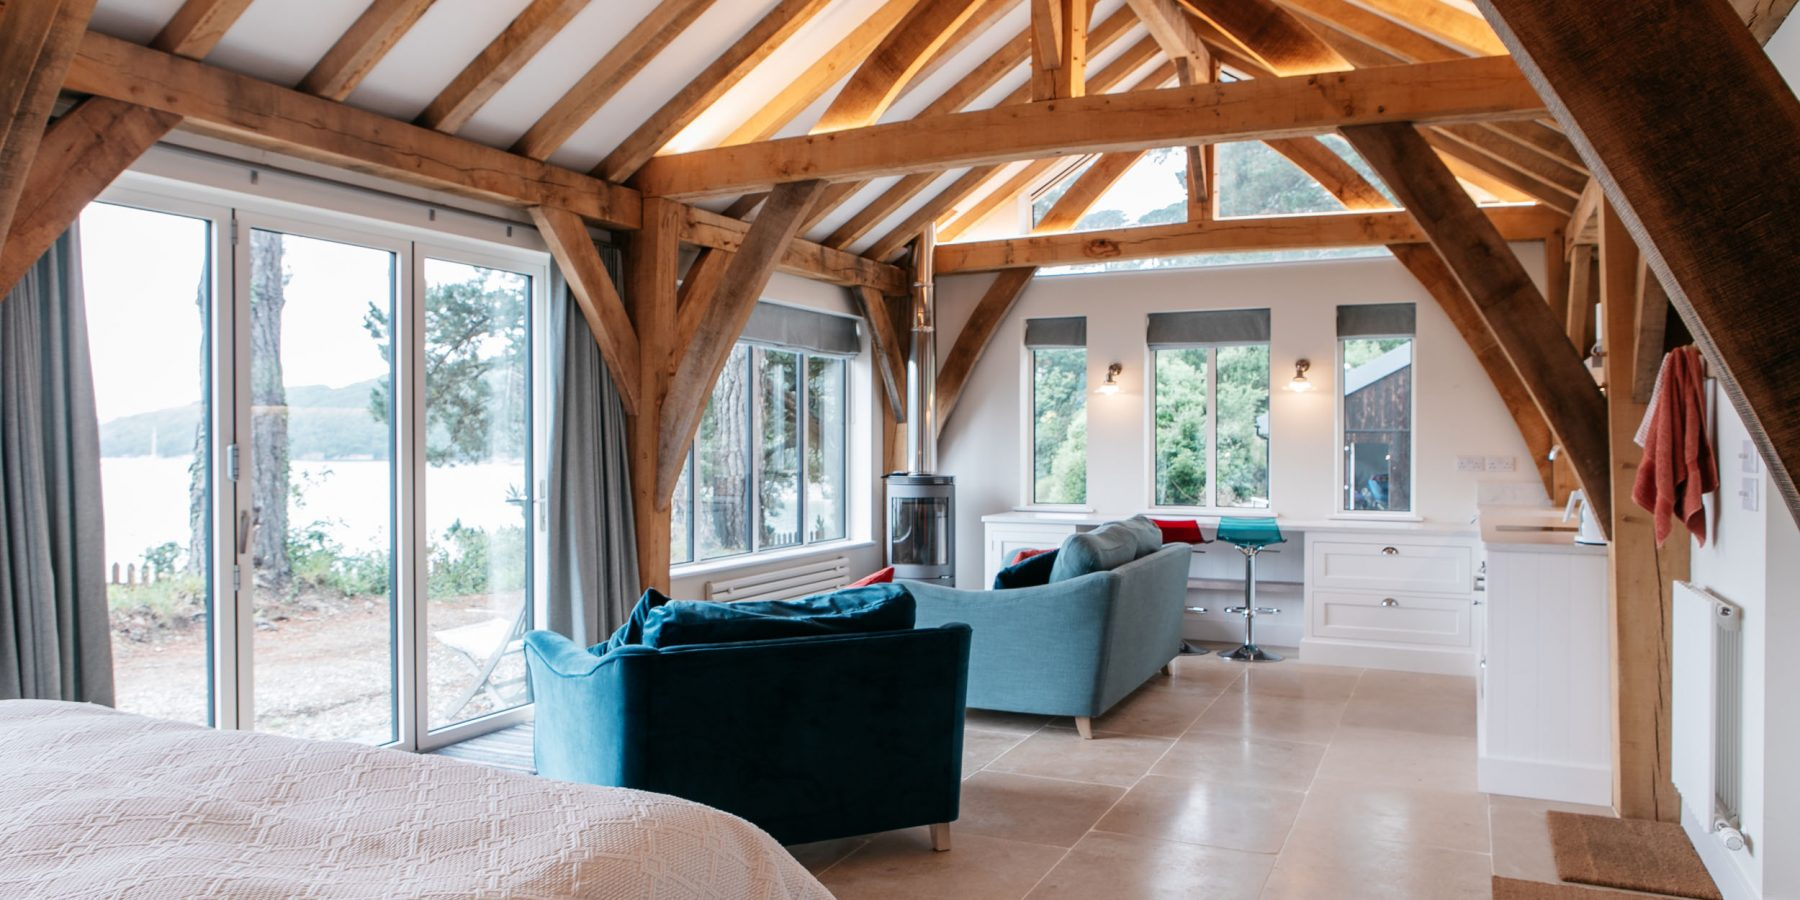 Thumbnail of http://Room%20with%20exposed%20wood%20beams%20and%20large%20windows